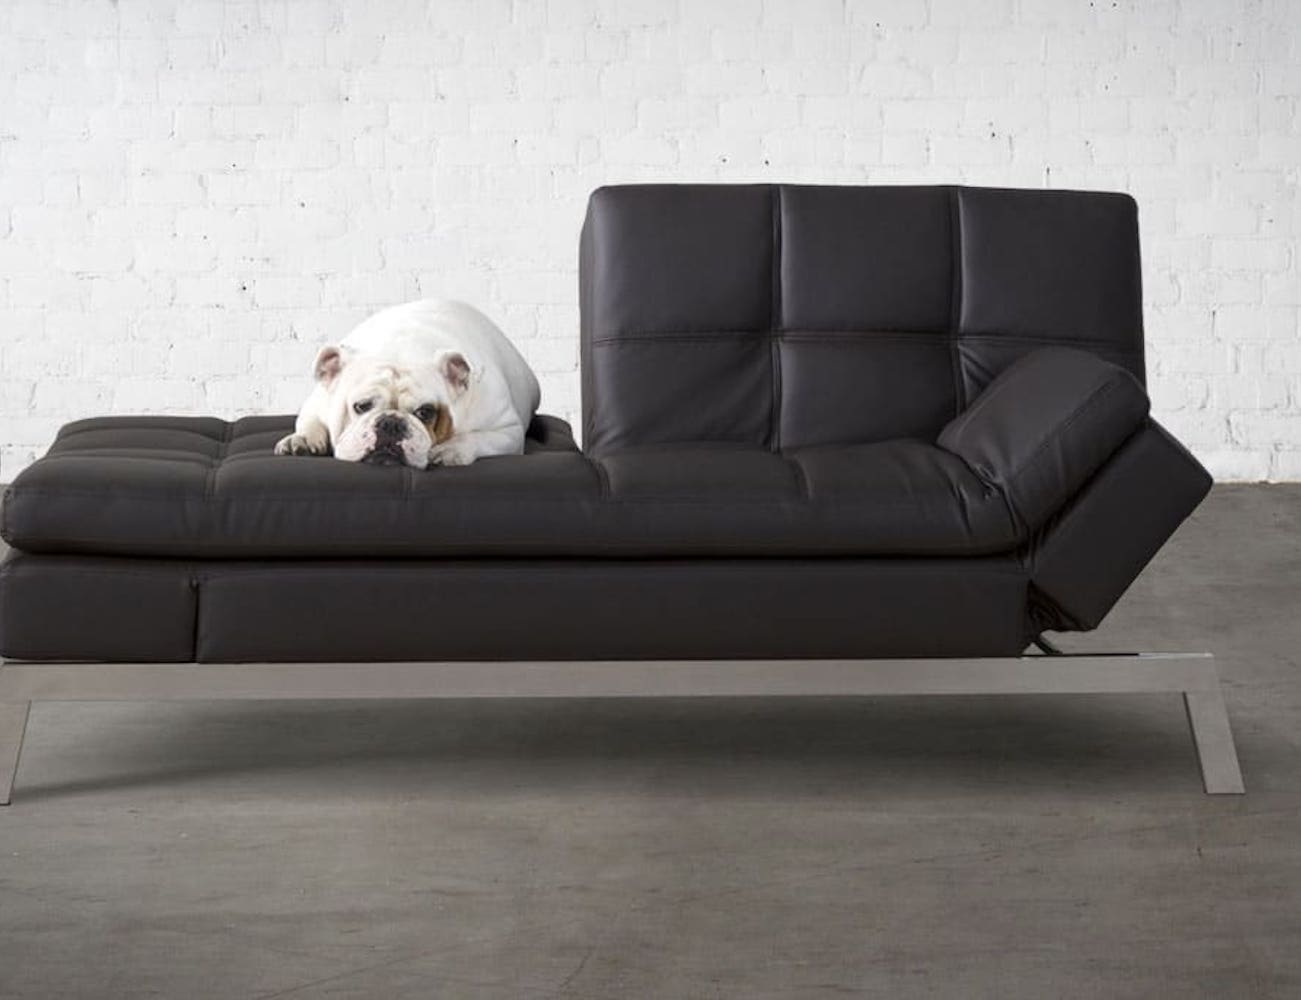 Coddle Couch Convertible Bed has everything you need to relax